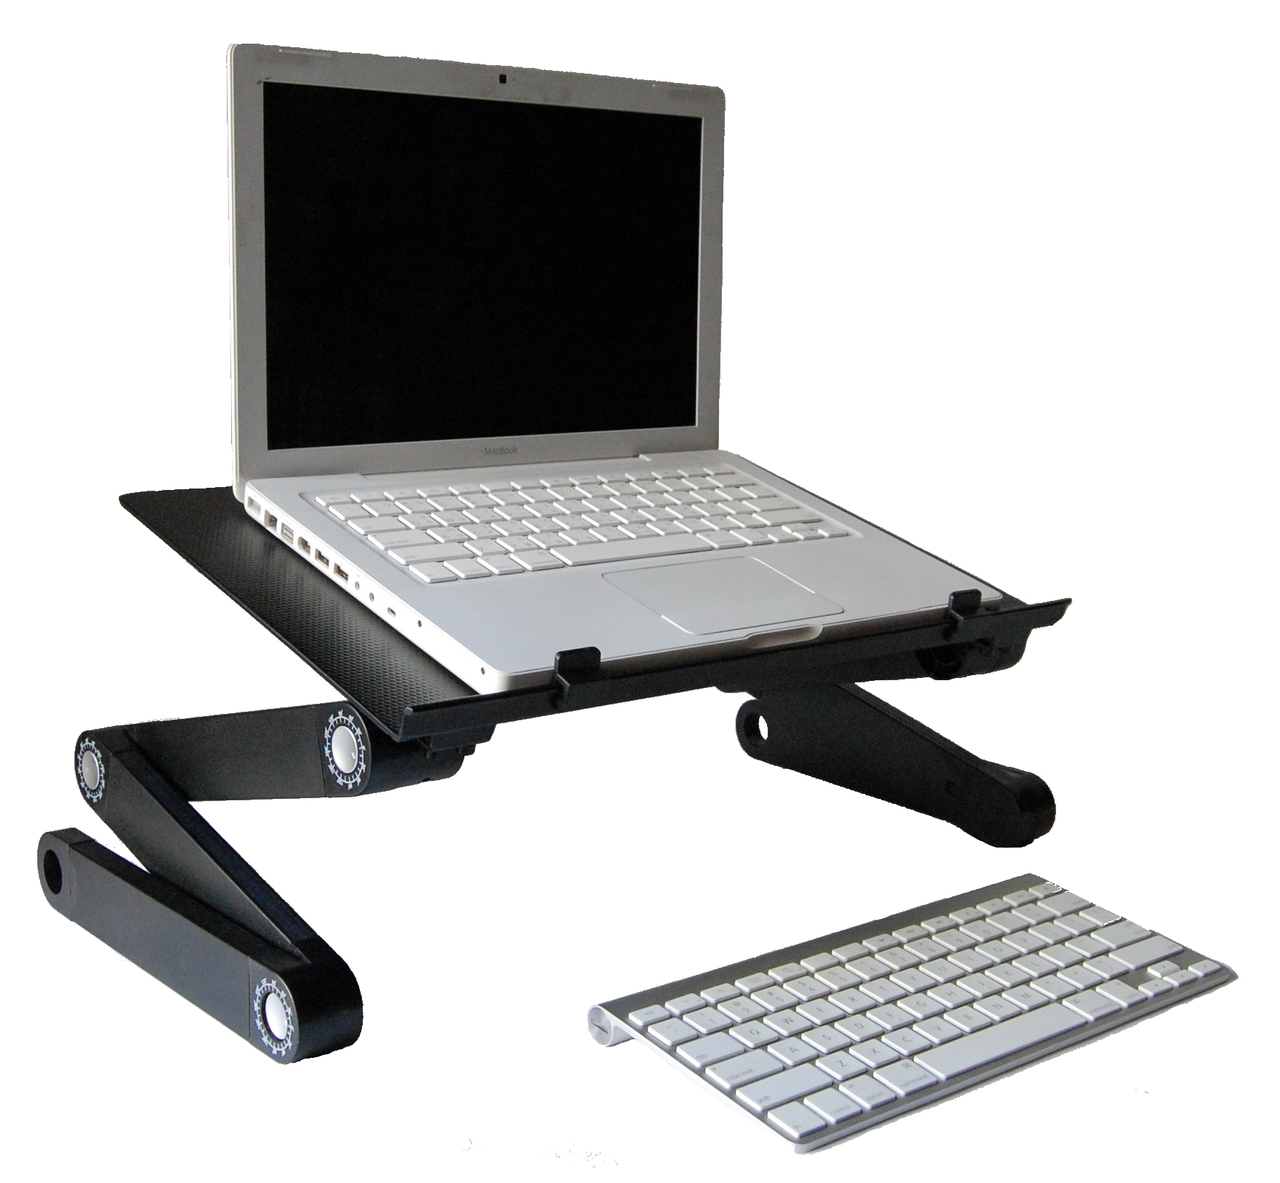 Articulating Laptop Stand